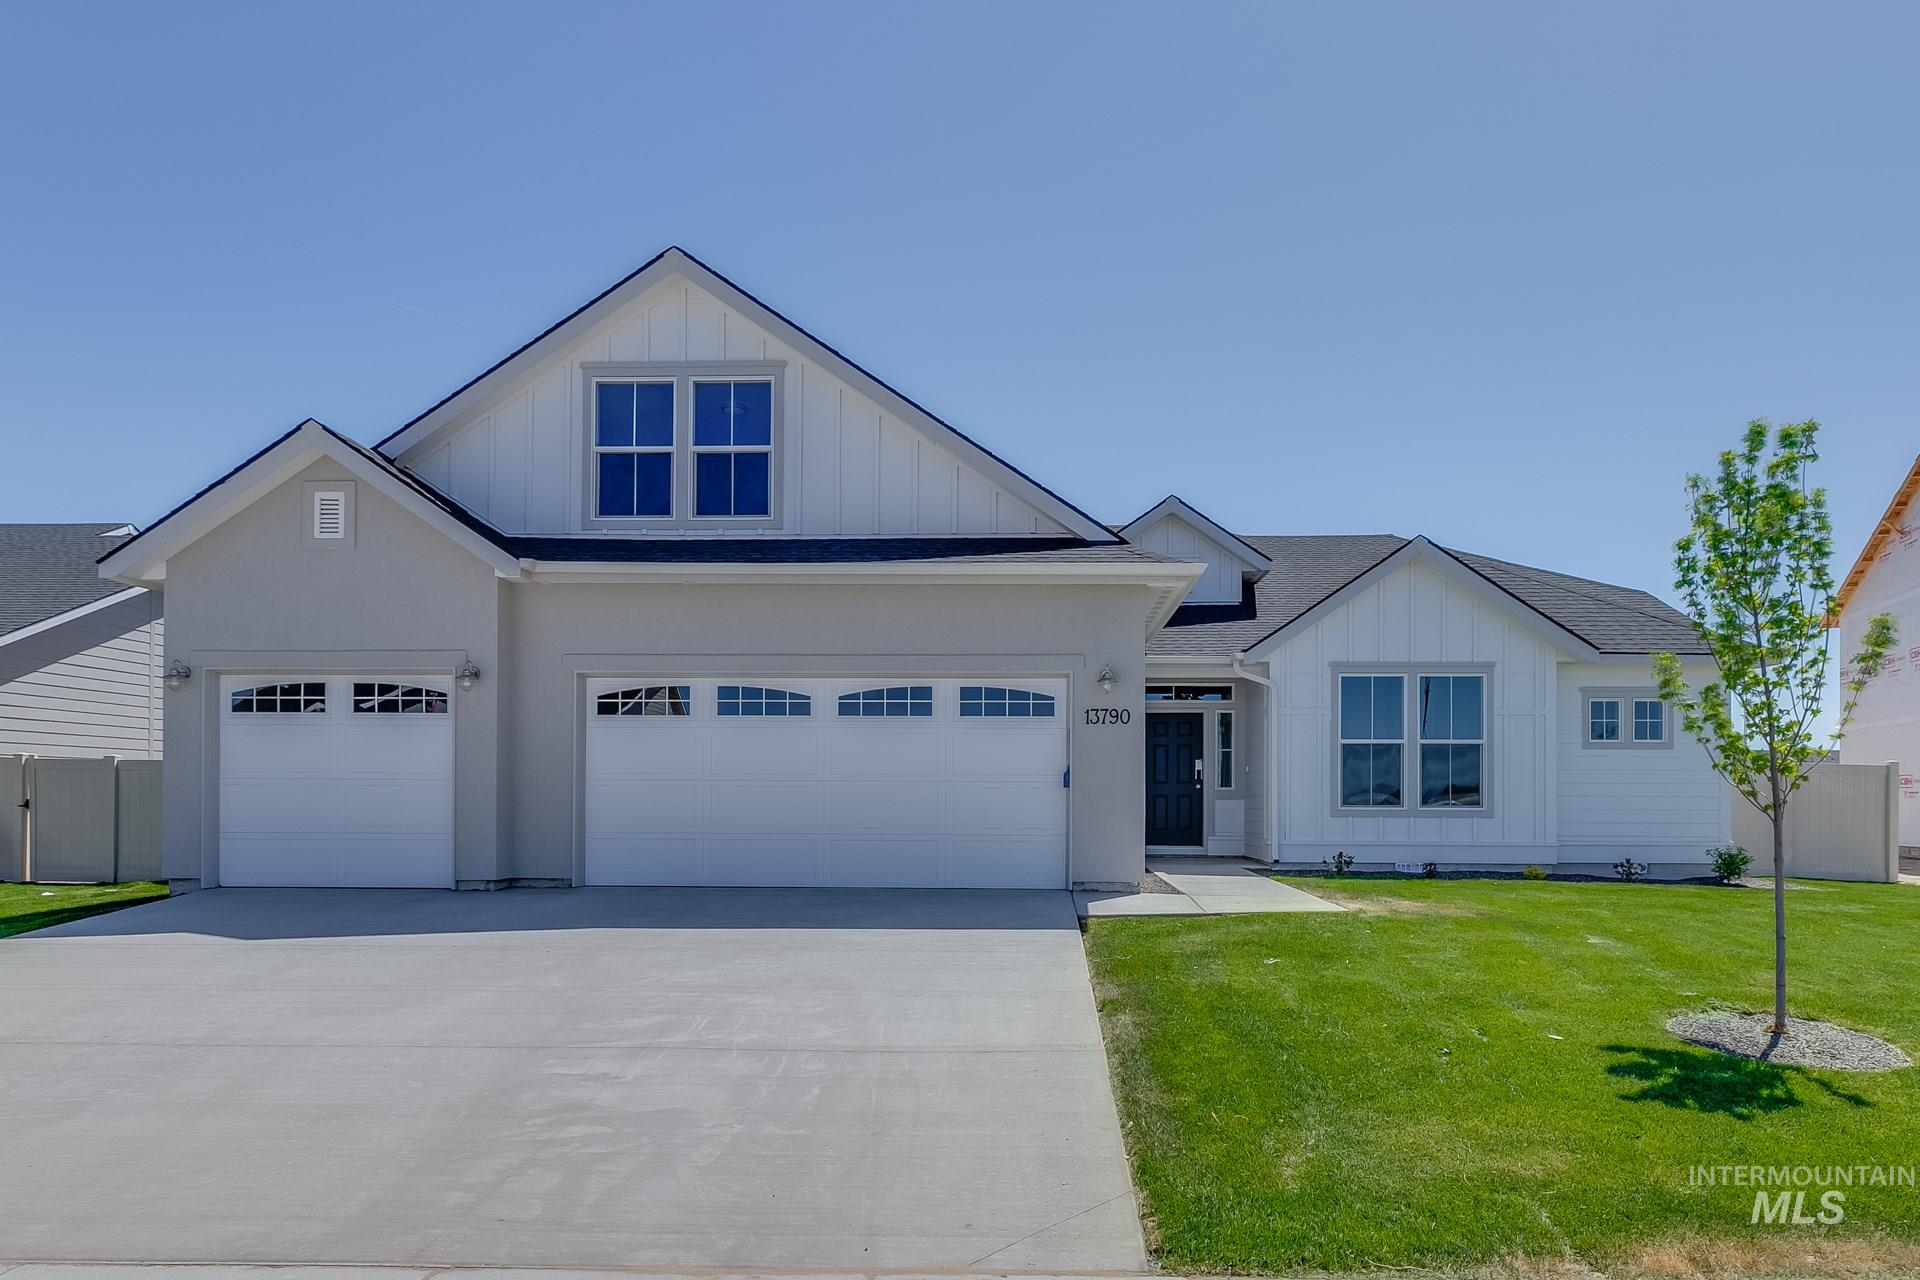 13665 S Baroque Ave Property Photo - Nampa, ID real estate listing